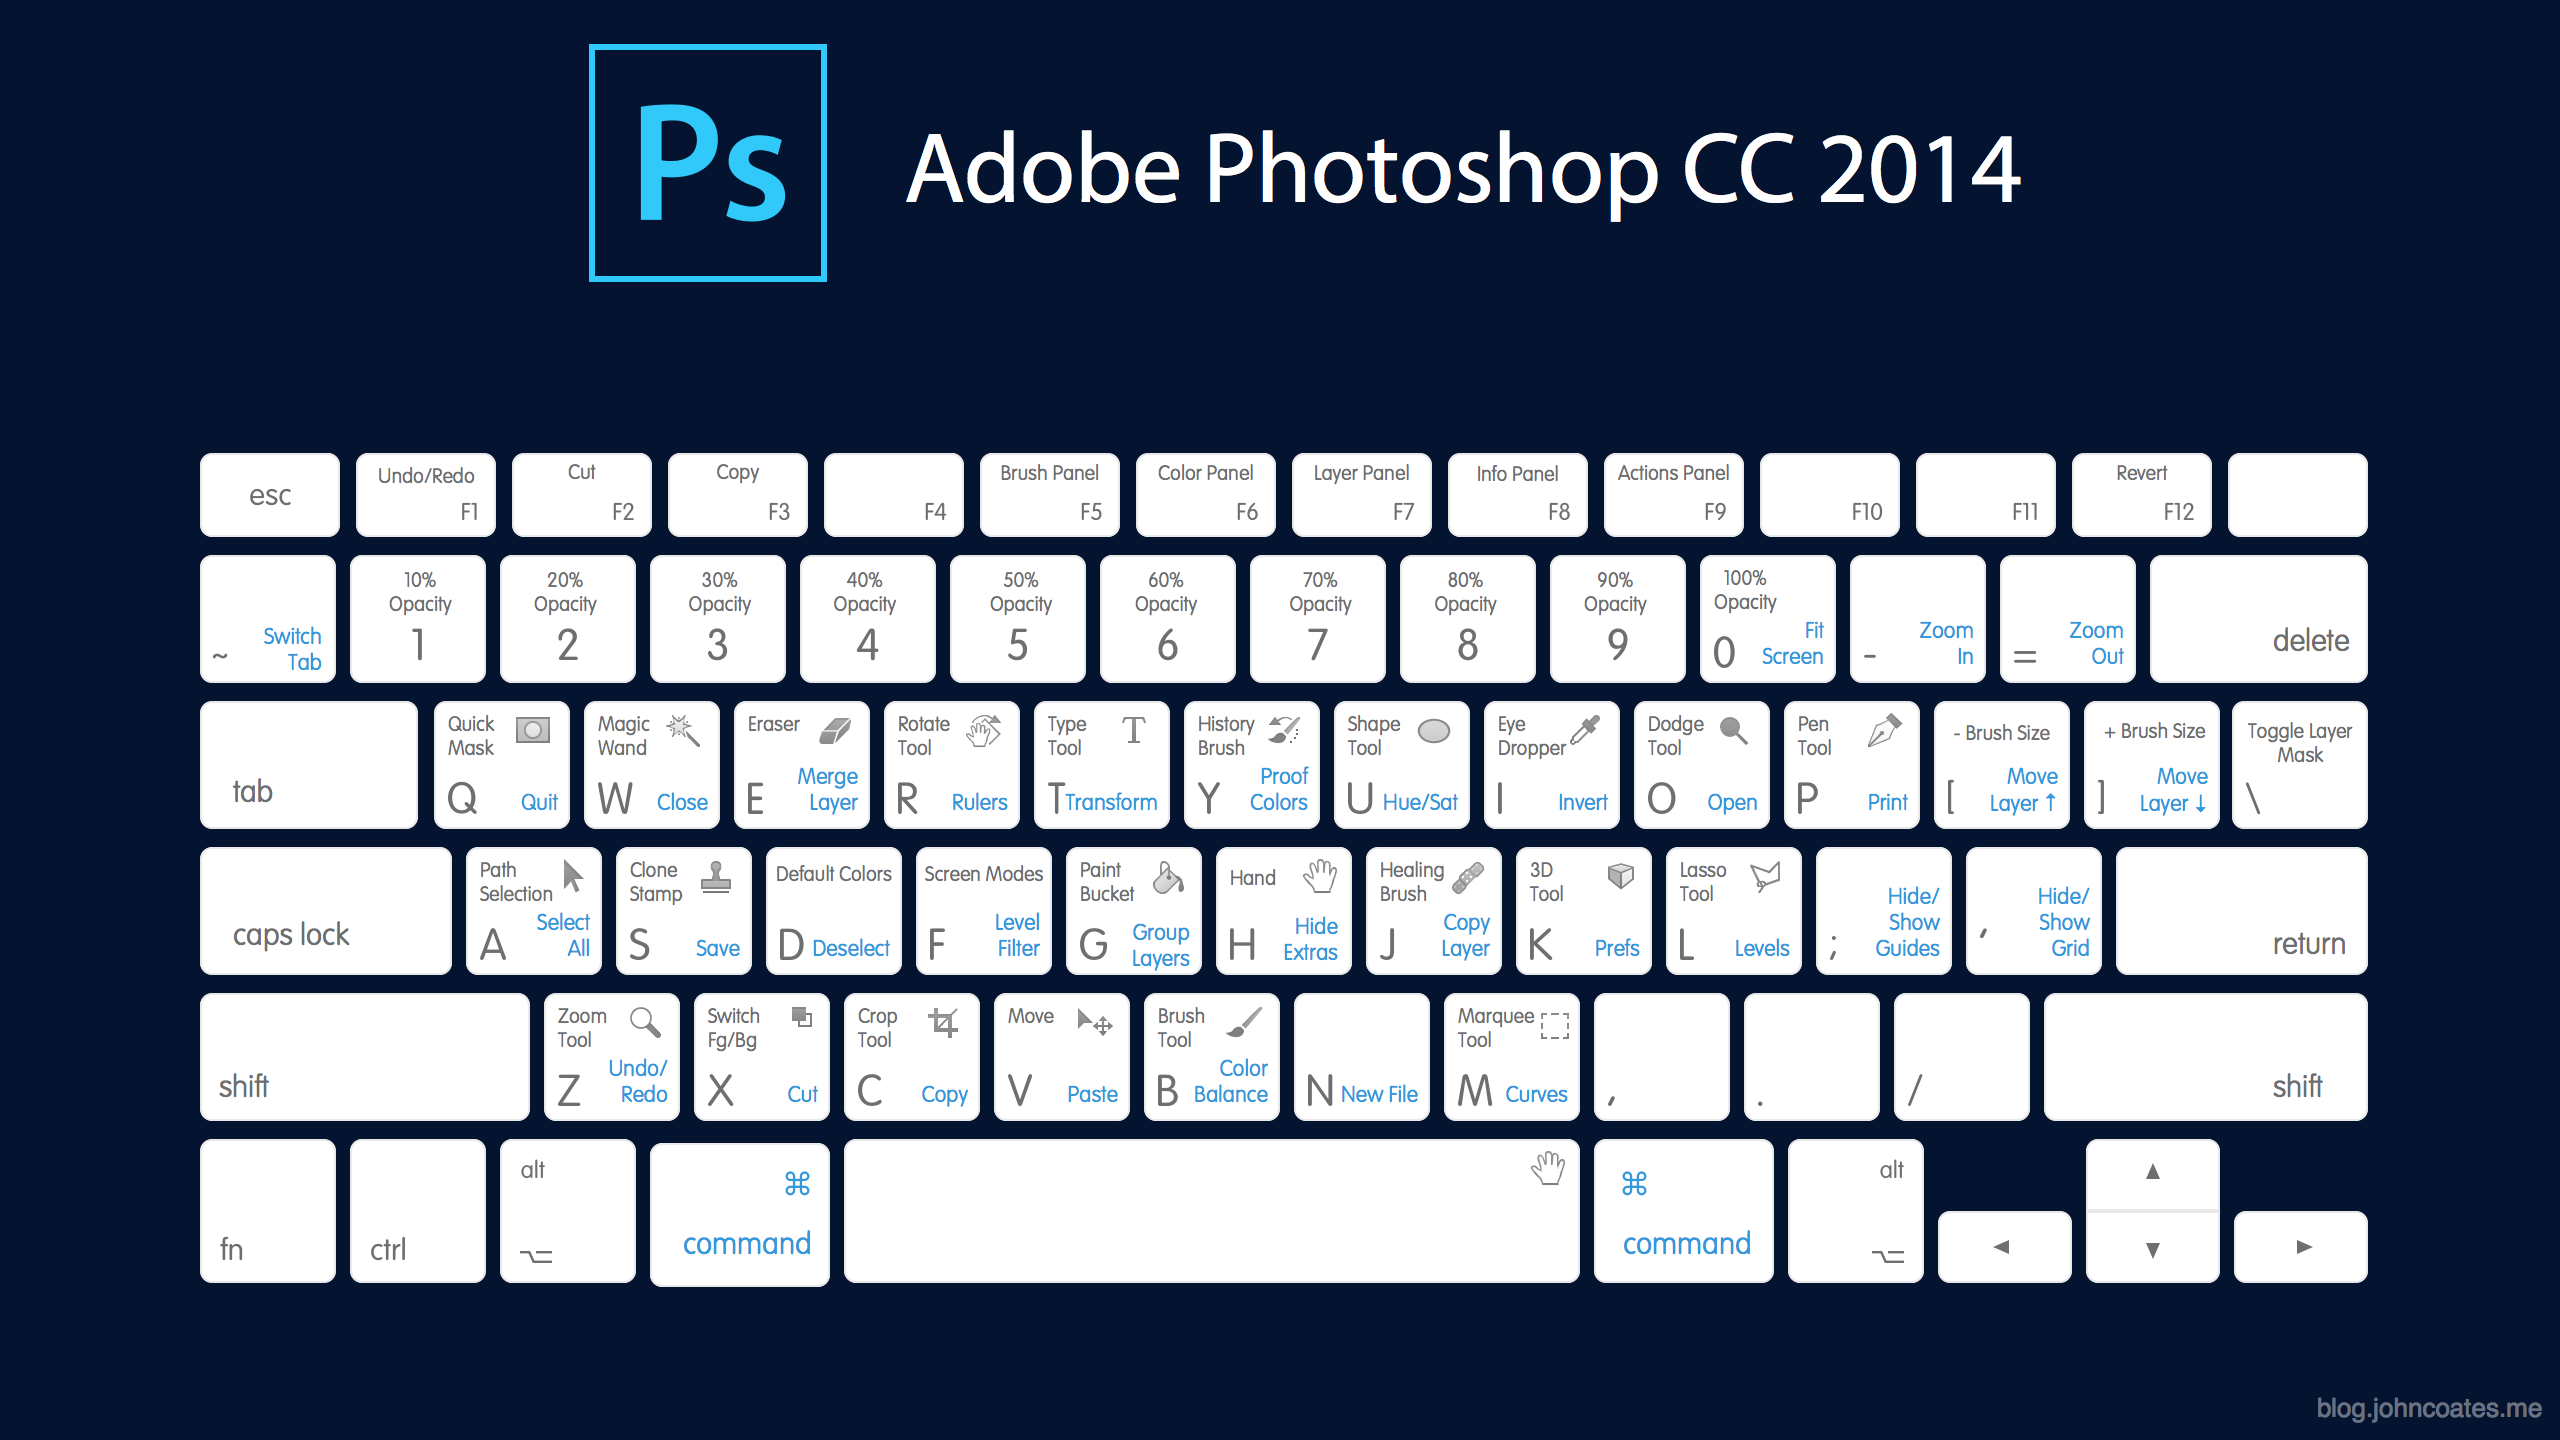 Photoshop CC 2014 Keyword Shortcut Cheat Sheet